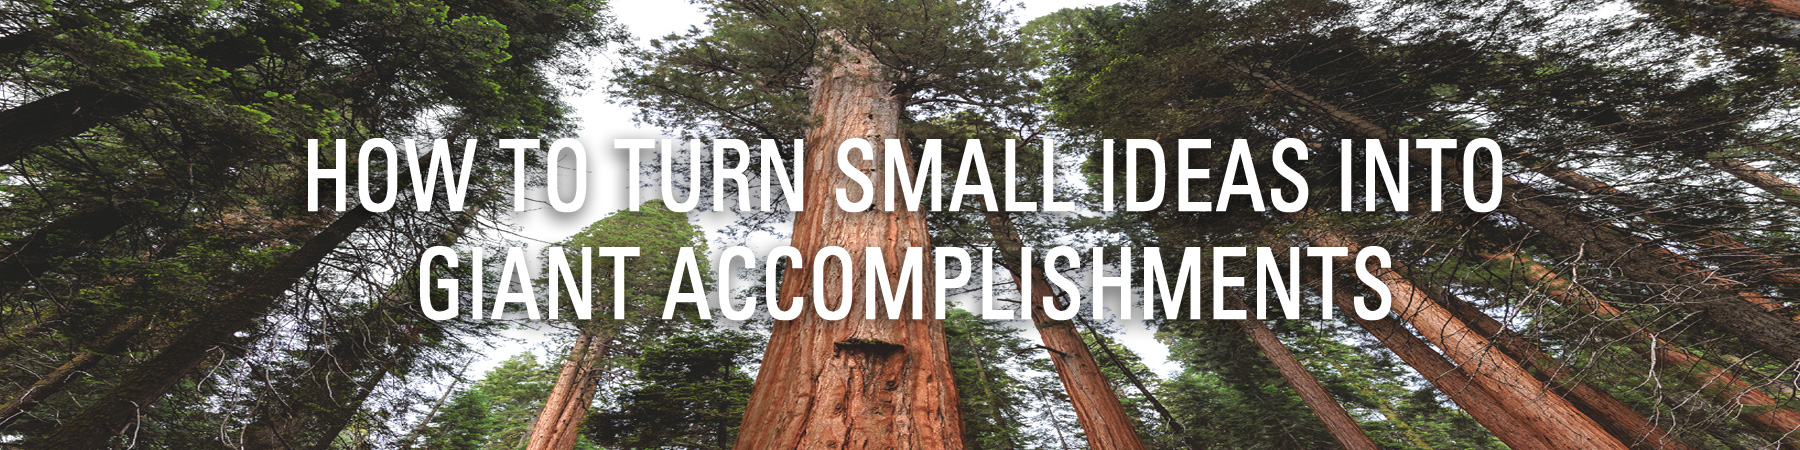 How to Turn Small Ideas Into Giant Accomplishments